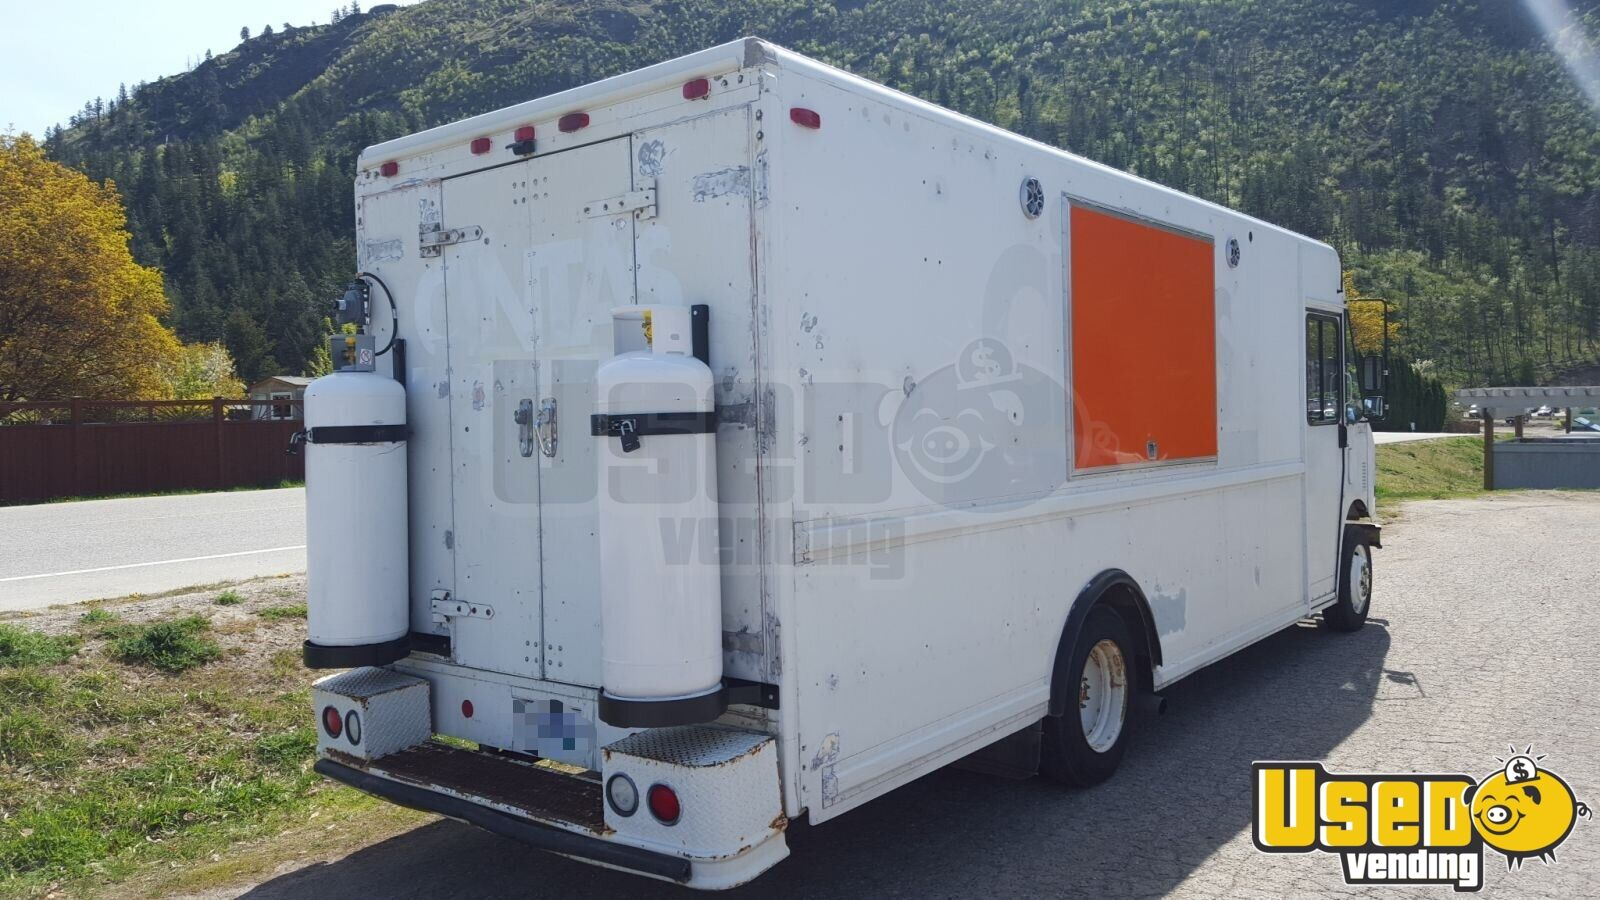 2001 Freightliner All-purpose Food Truck Insulated Walls British Columbia Diesel Engine for Sale - 5